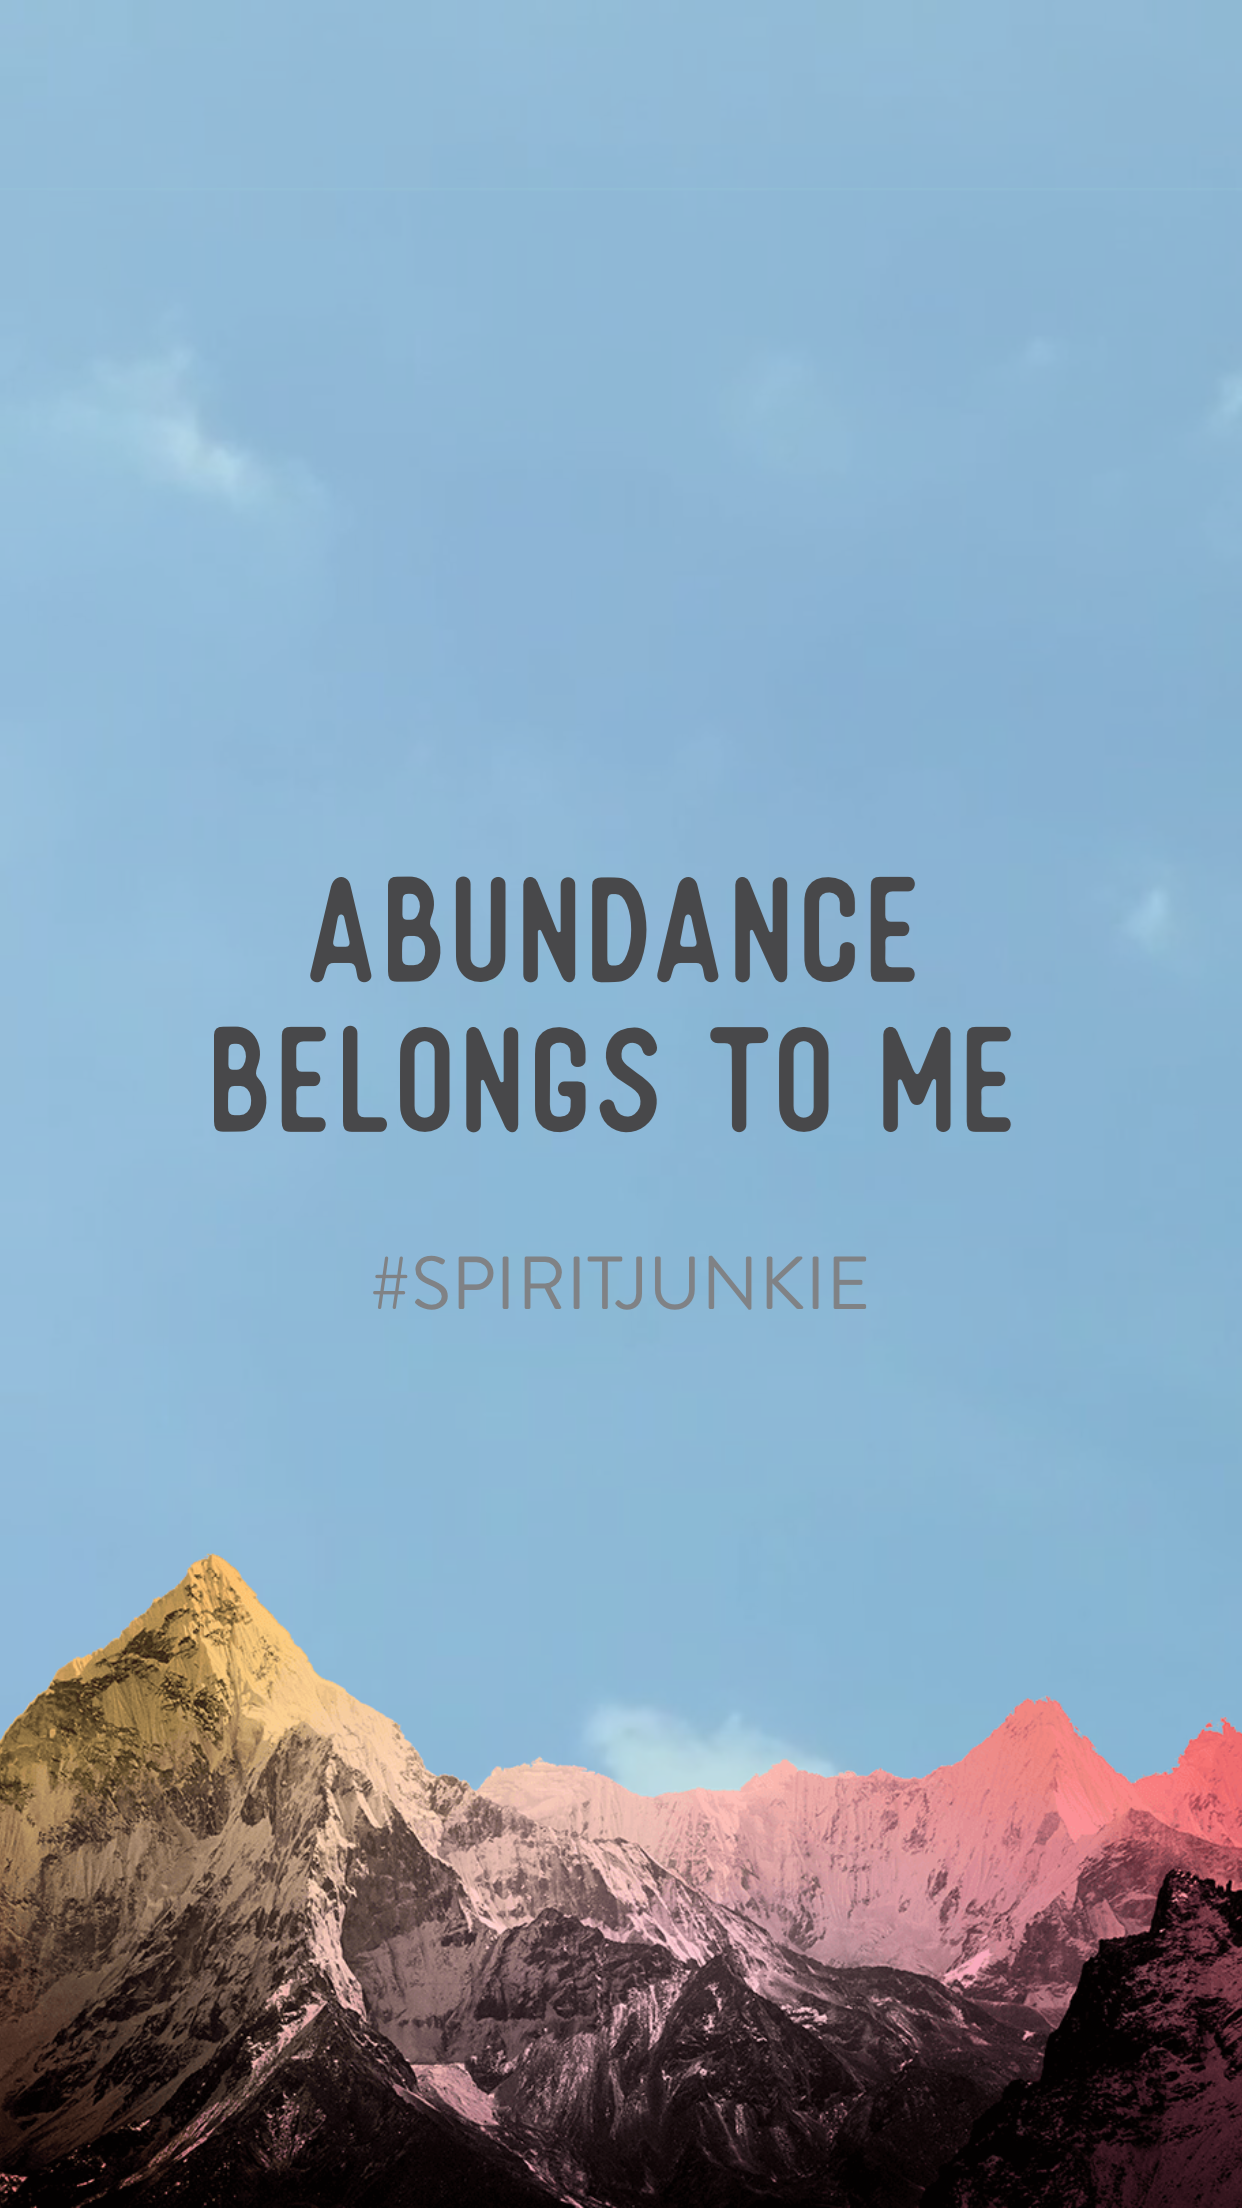 Abundance belongs to me | Spirit Junkie App by Gabby Bernstein